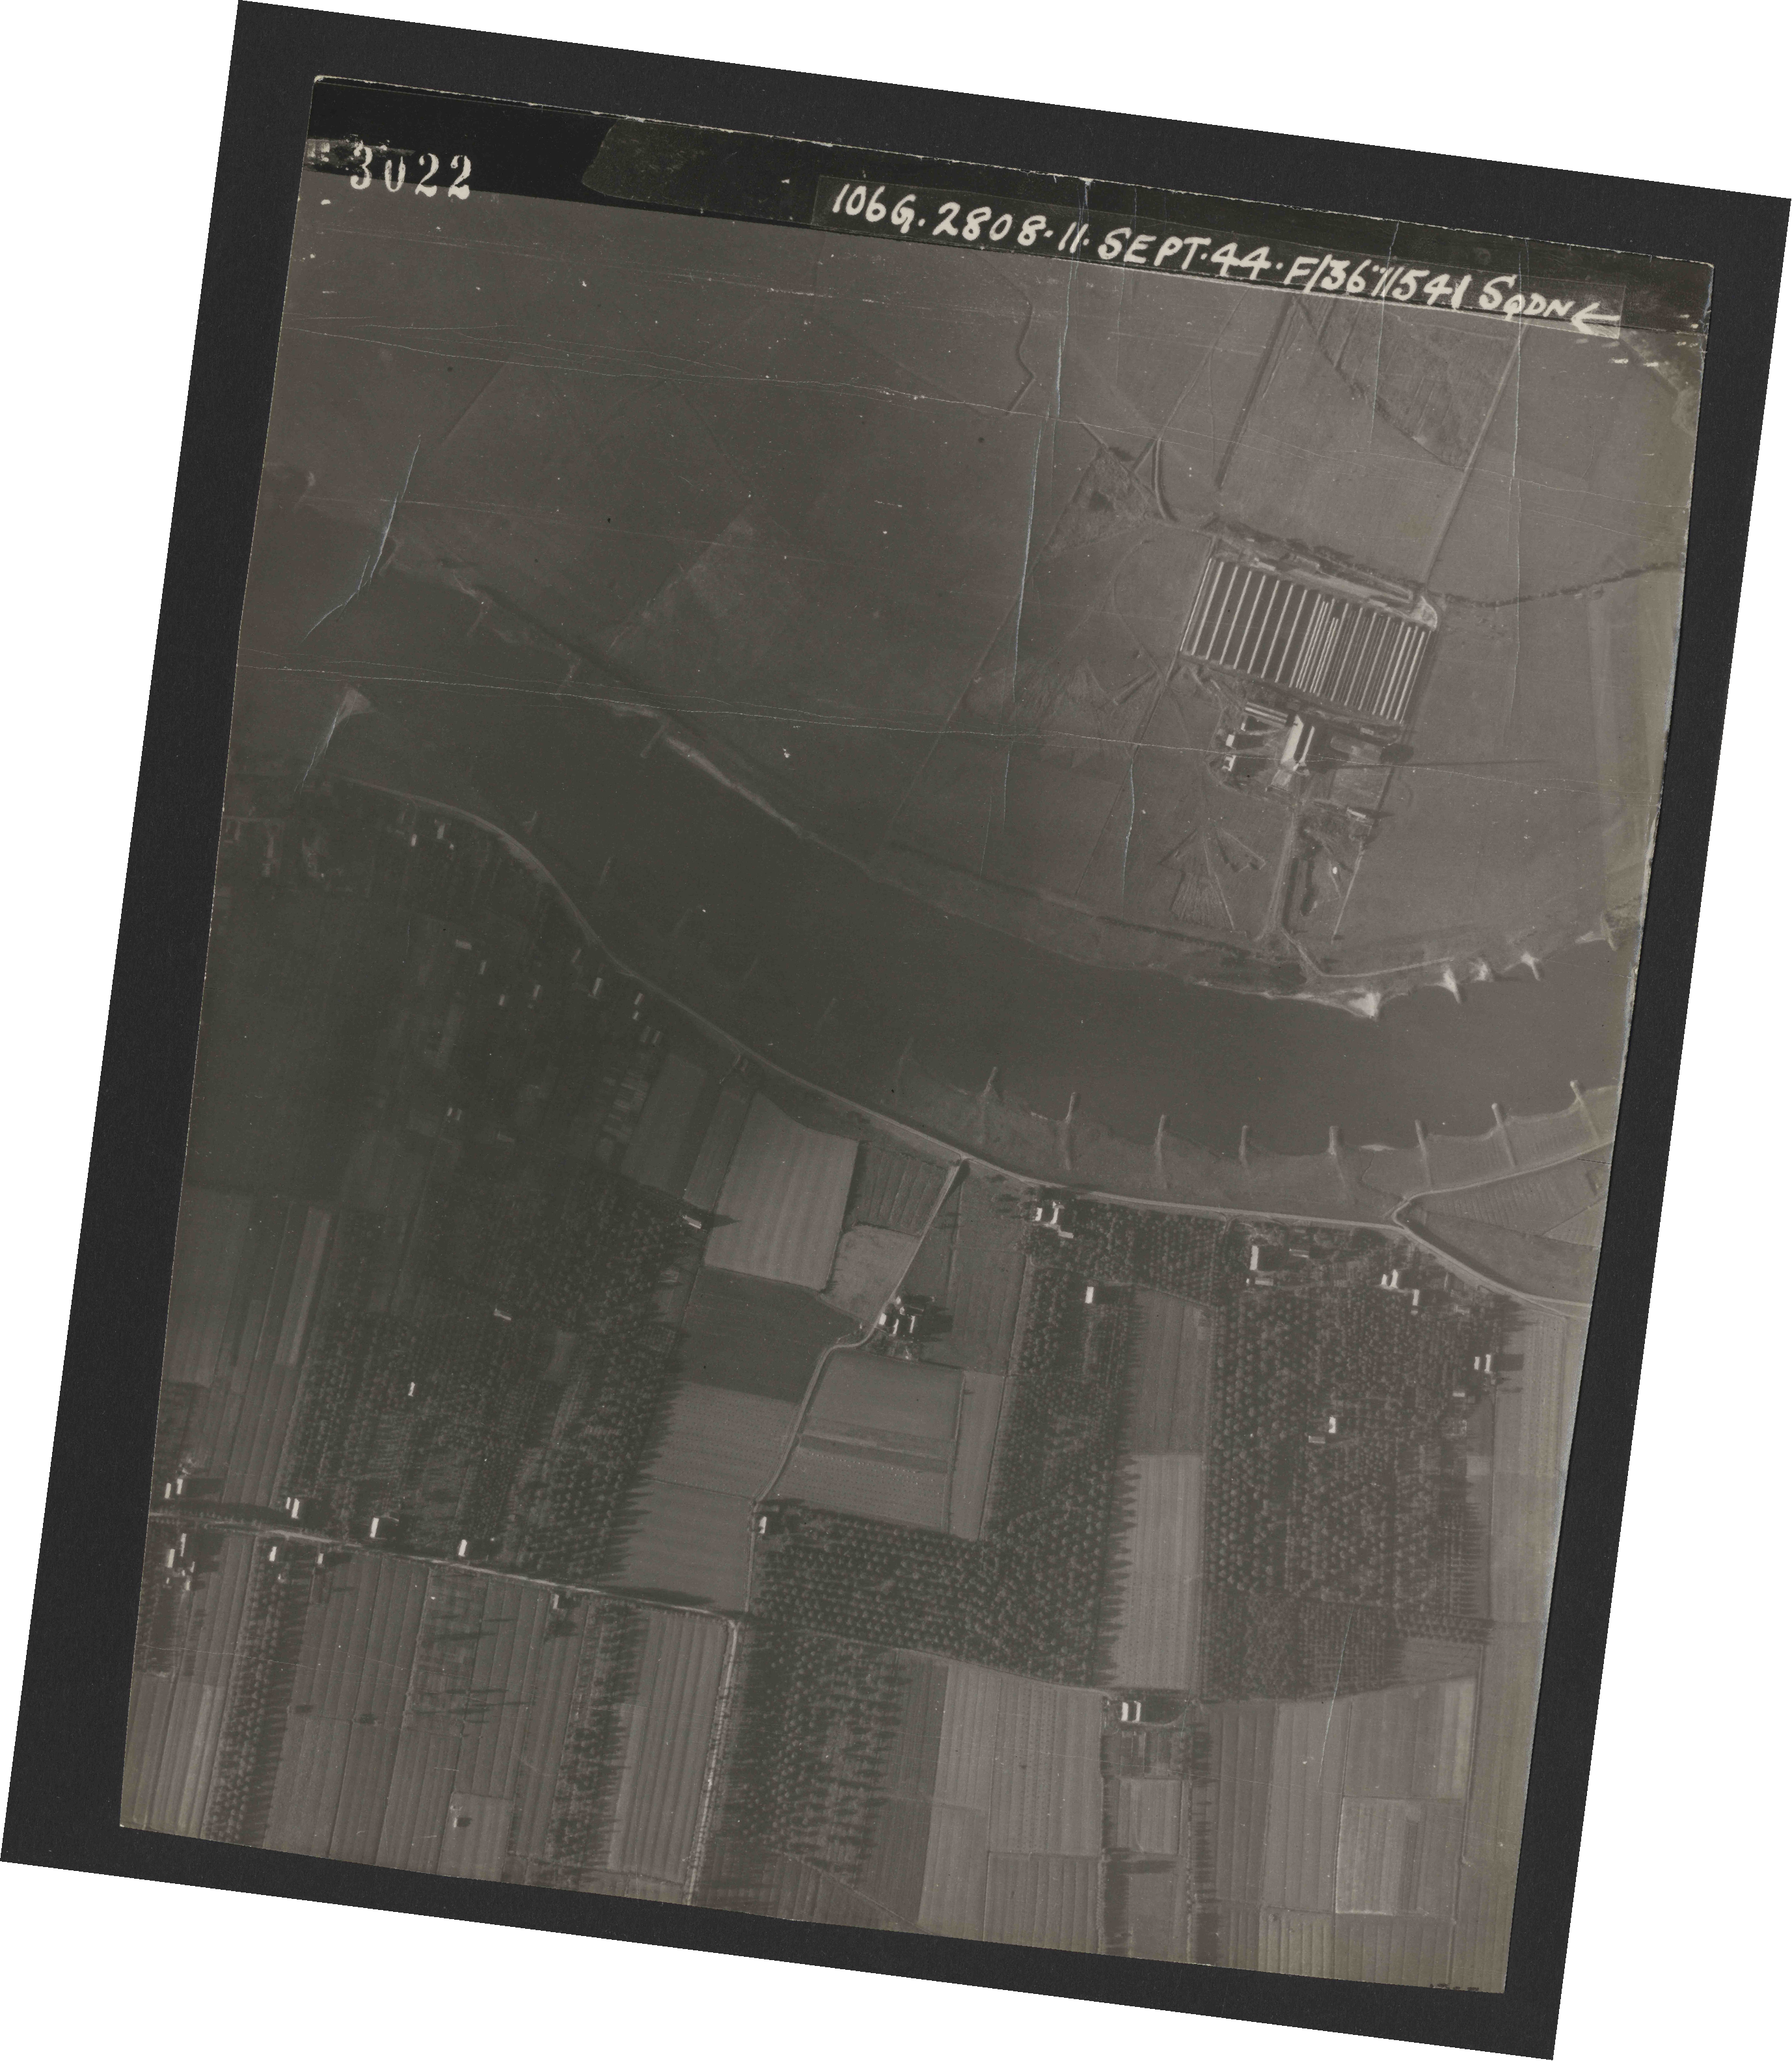 Collection RAF aerial photos 1940-1945 - flight 312, run 01, photo 3022